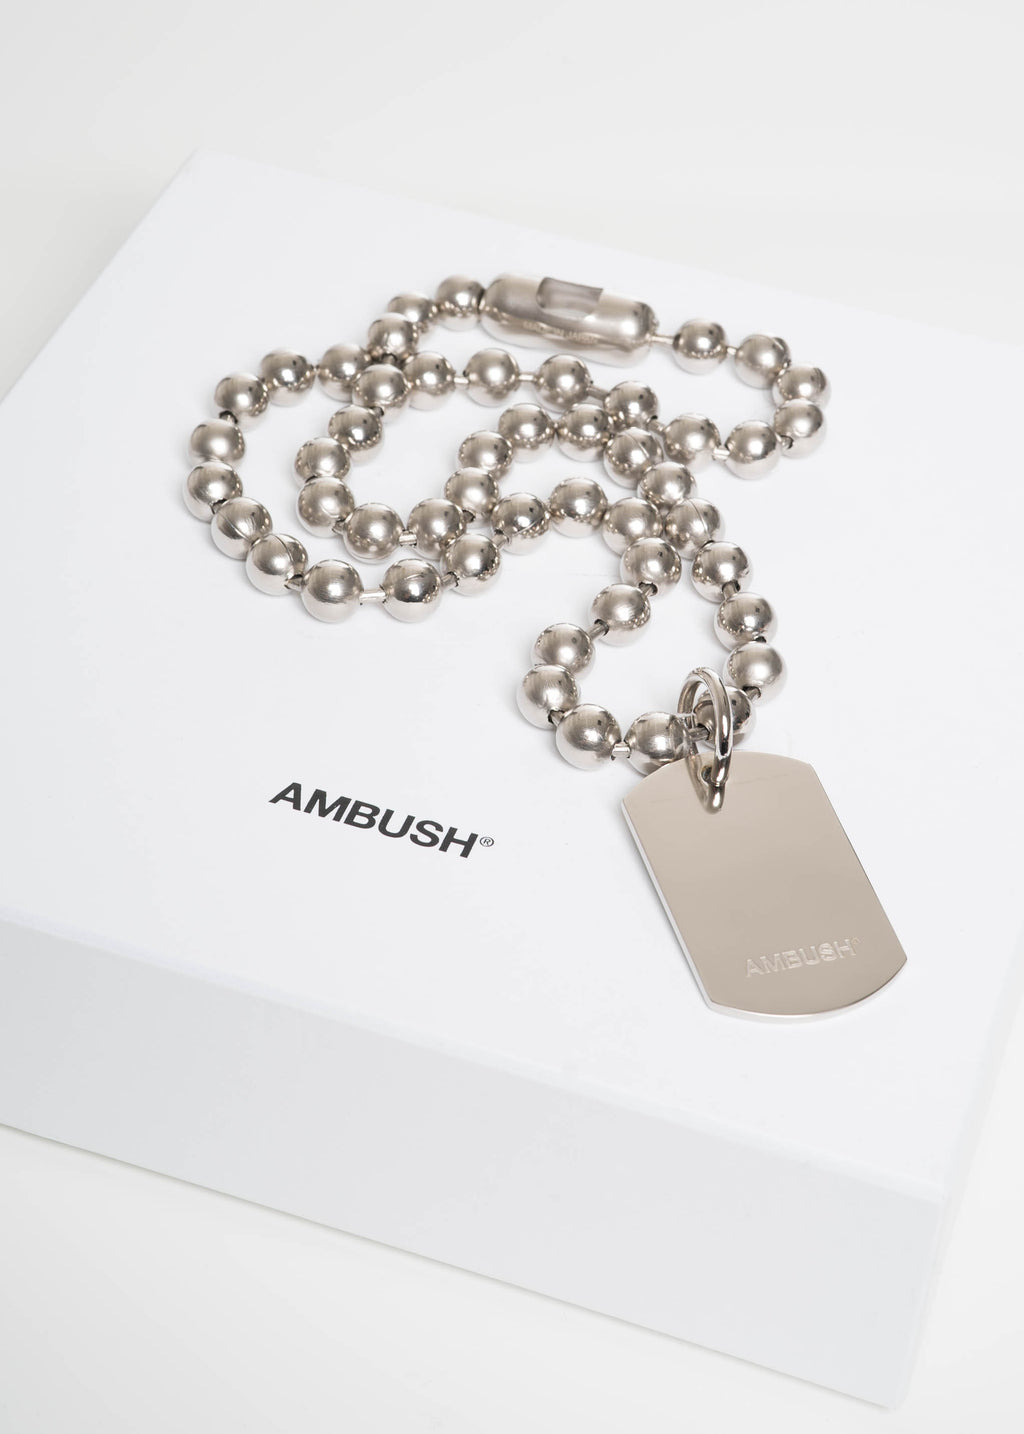 Ambush, Silver Classic Chain 4 Necklace, 017 Shop